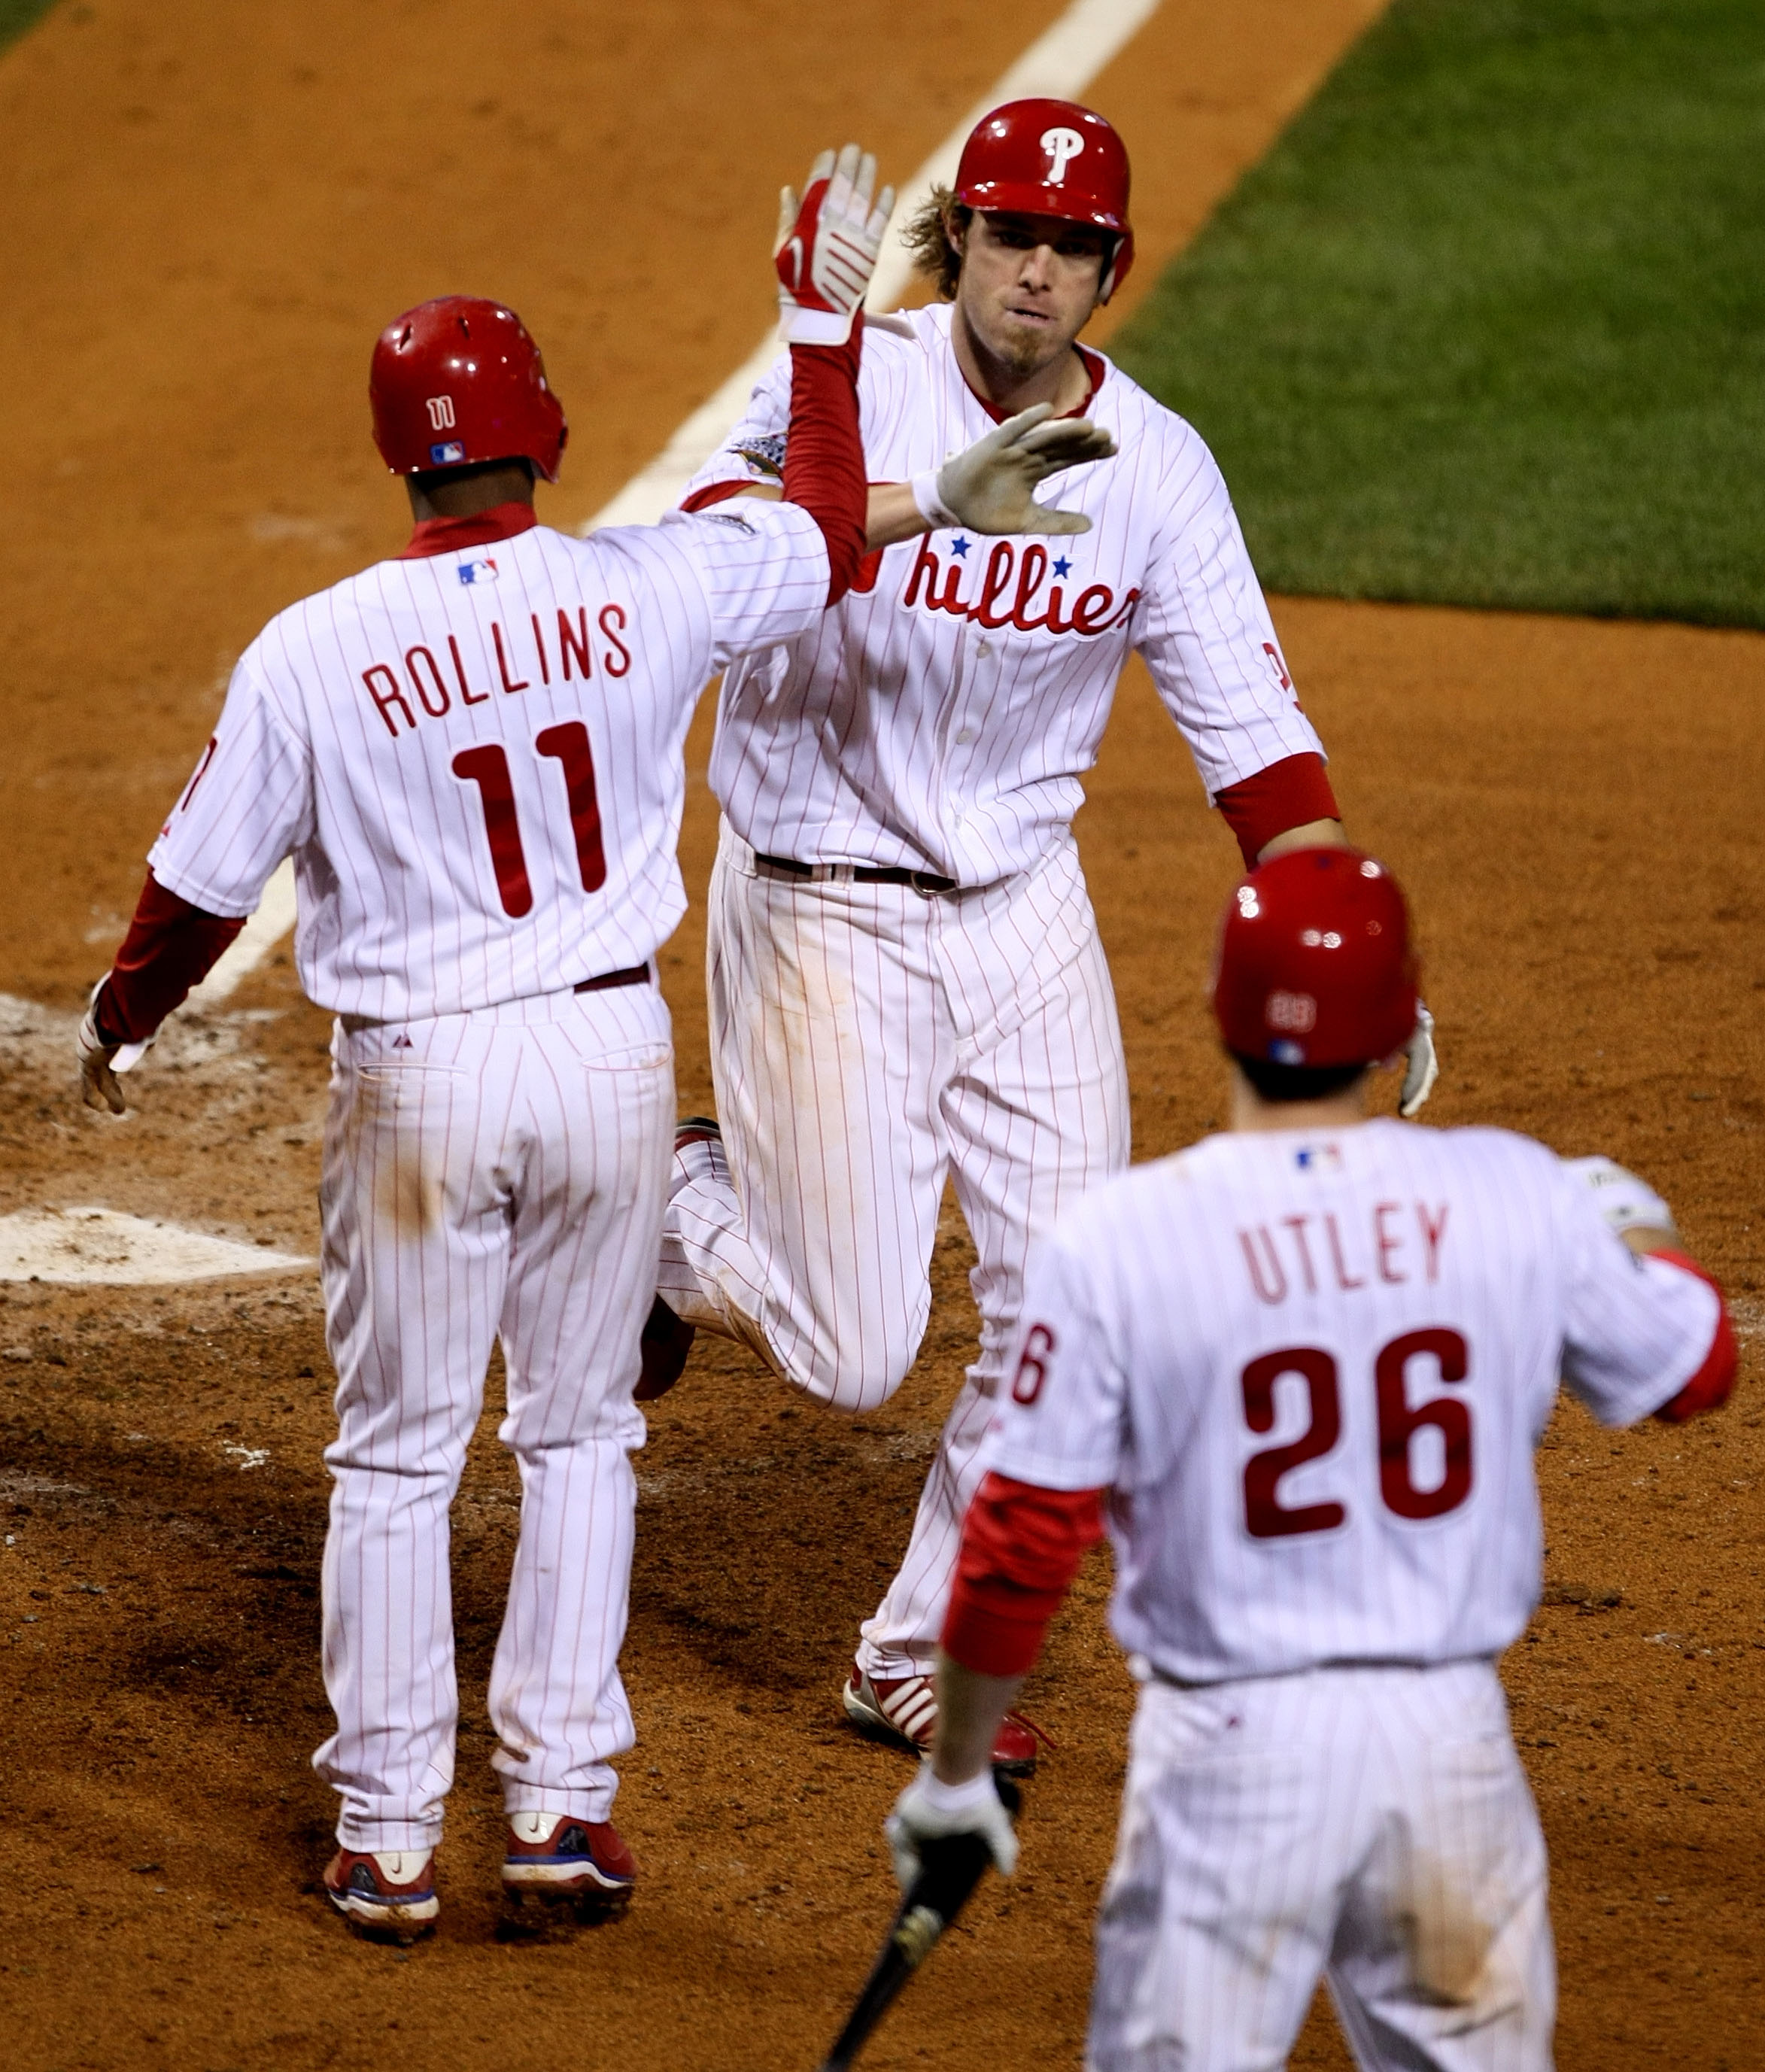 PHILADELPHIA - OCTOBER 26:  Jayson Werth #28 of the Philadelphia Phillies celebrates with Jimmy Rollins #11 and Chase Utley #26 after hitting a two-run home run against the Tampa Bay Rays during game four of the 2008 MLB World Series on October 26, 2008 a